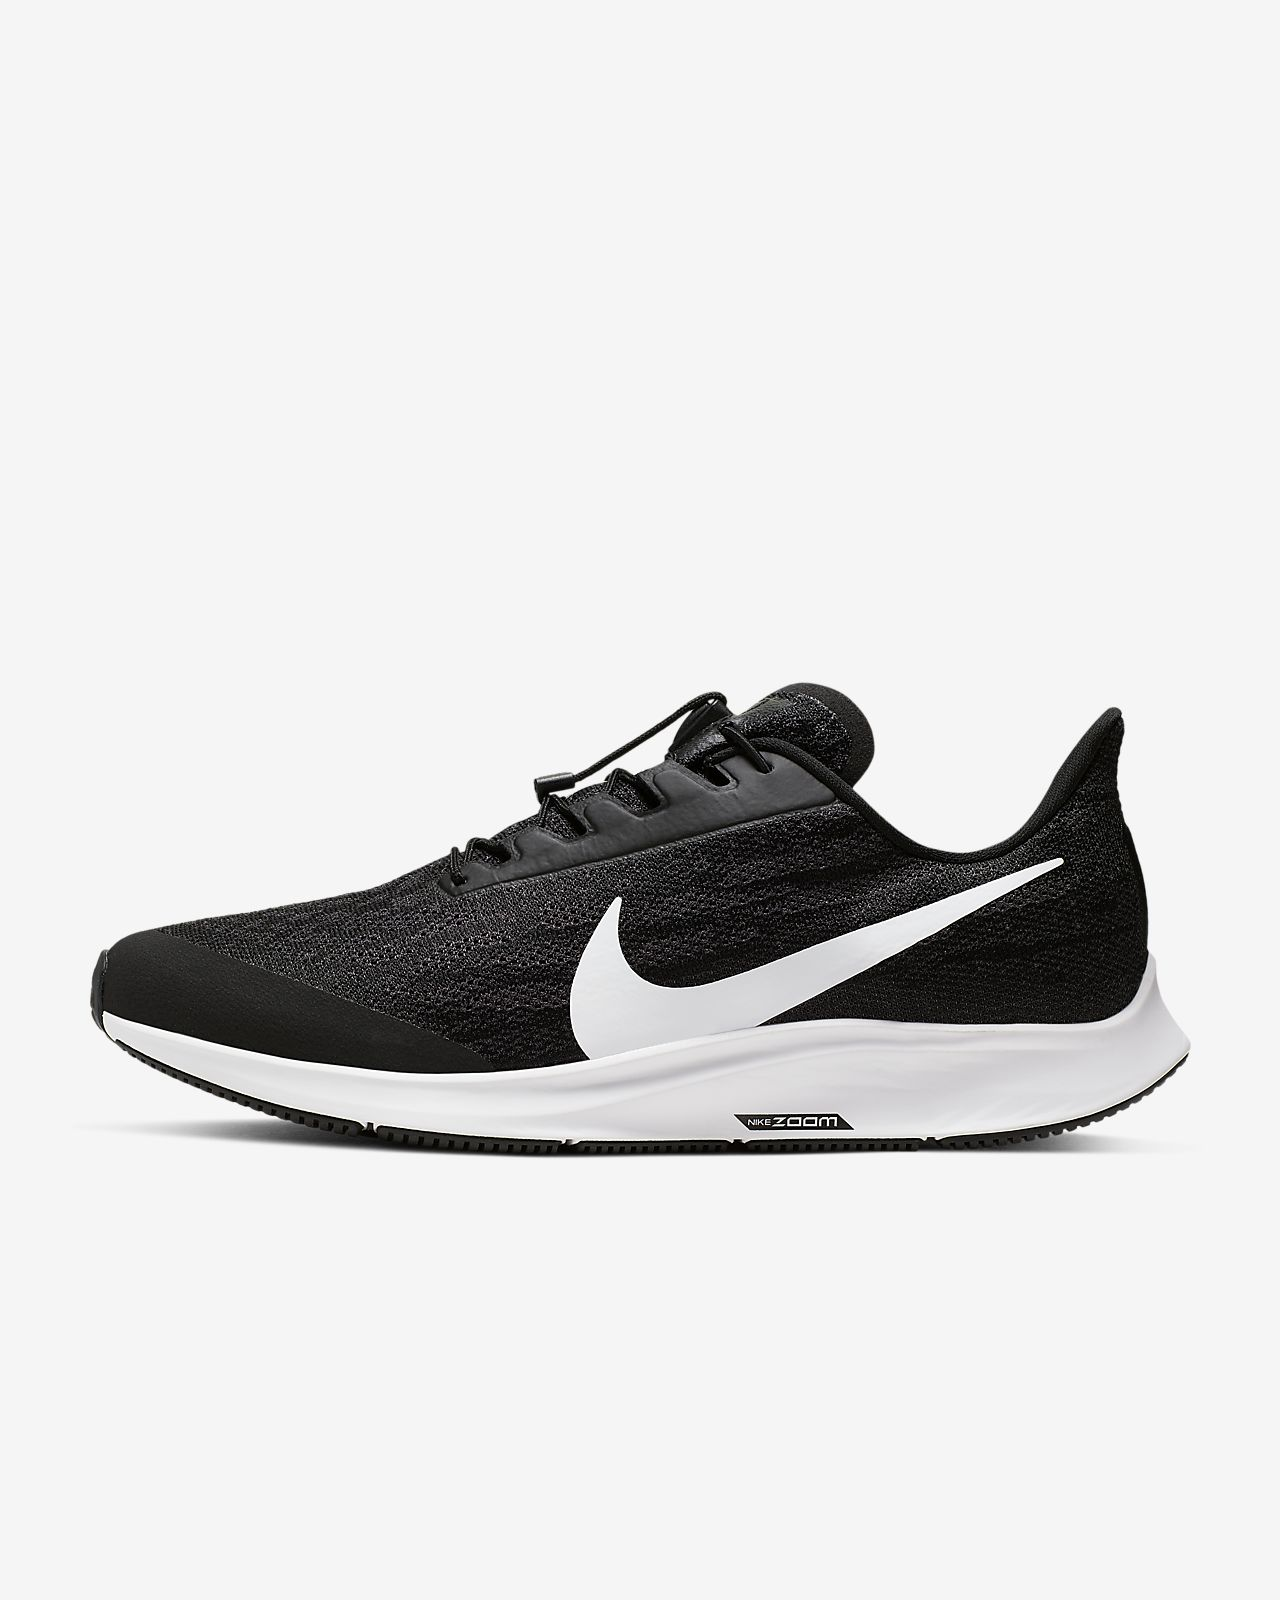 664b044bdf5 Nike Air Zoom Pegasus 36 FlyEase Men's Running Shoe. Nike.com IL